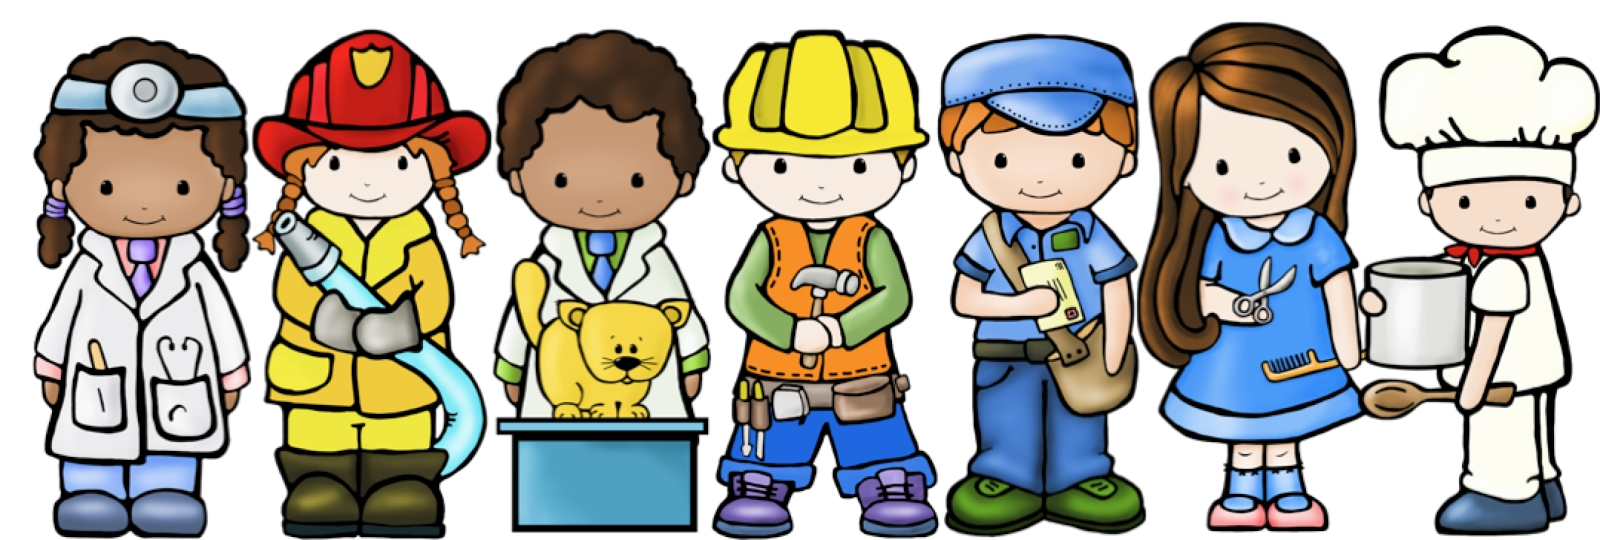 Community clipart person. New gallery digital collection